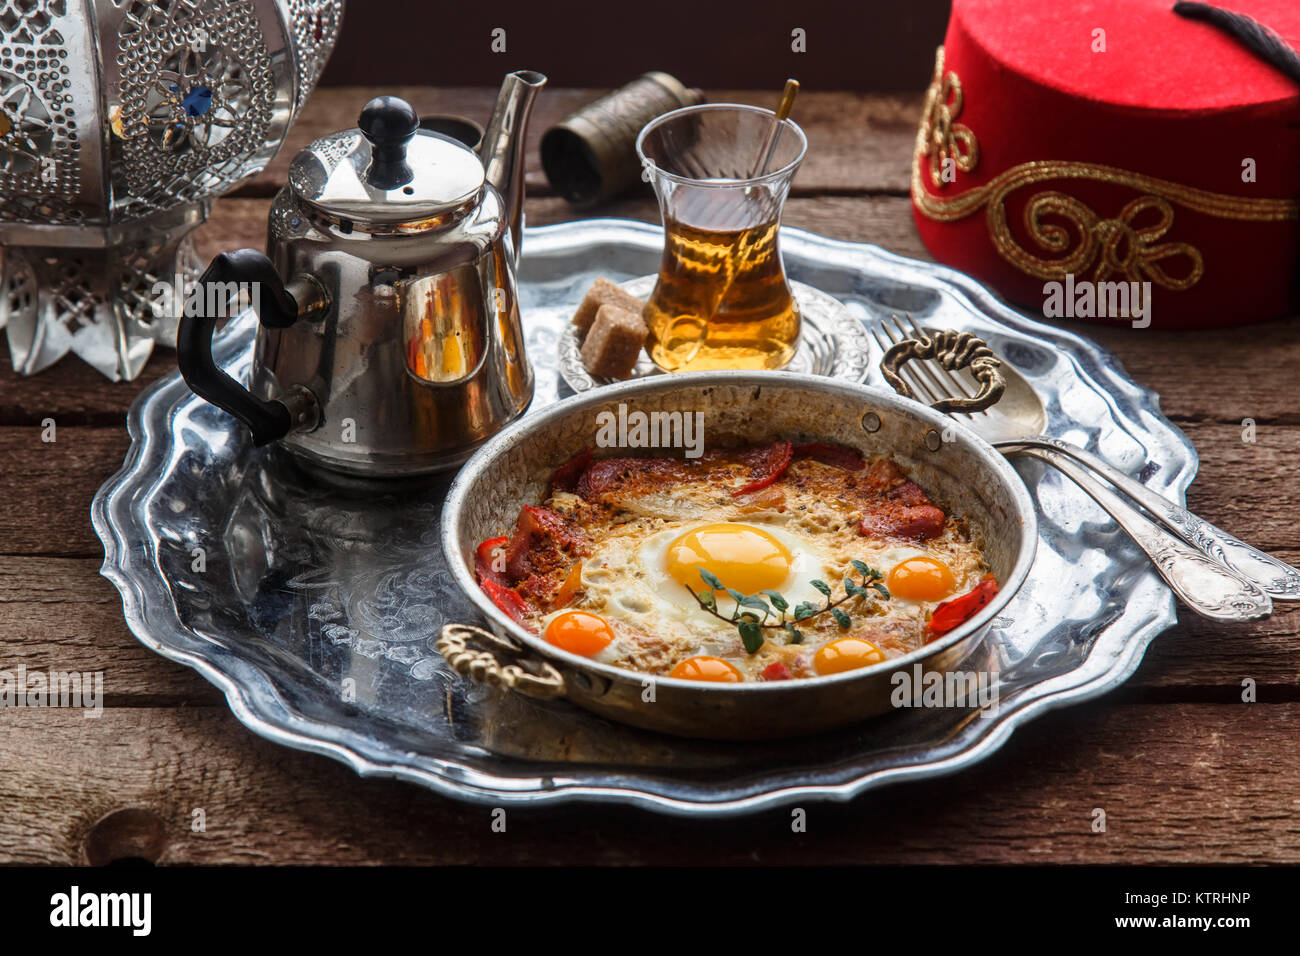 Fried egg with cured meat, traditional turkish breakfast, served in metal dishware, rustic Stock Photo